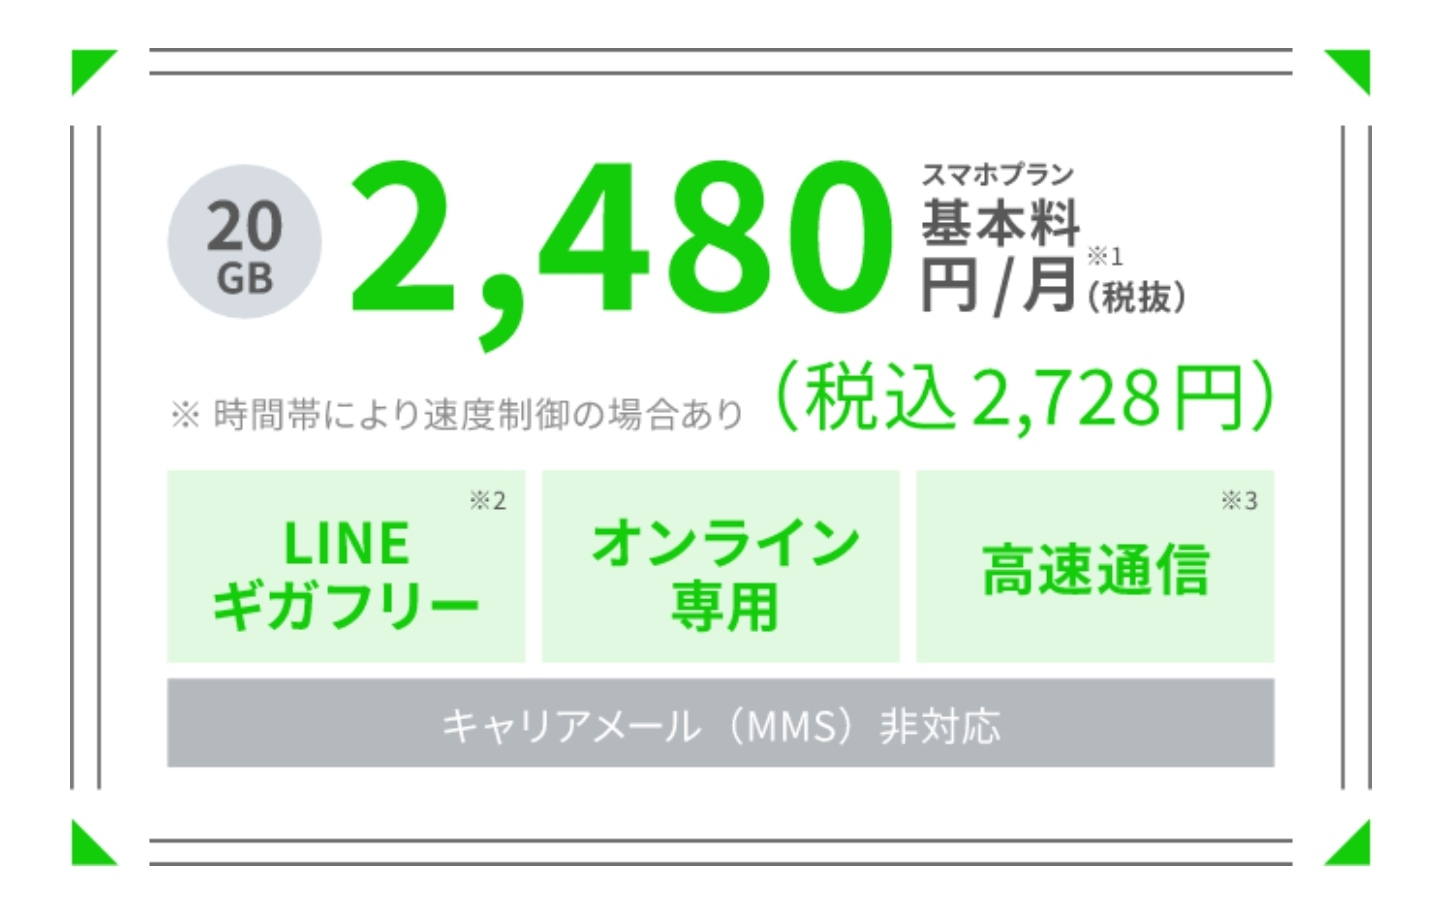 LINEMOの概要